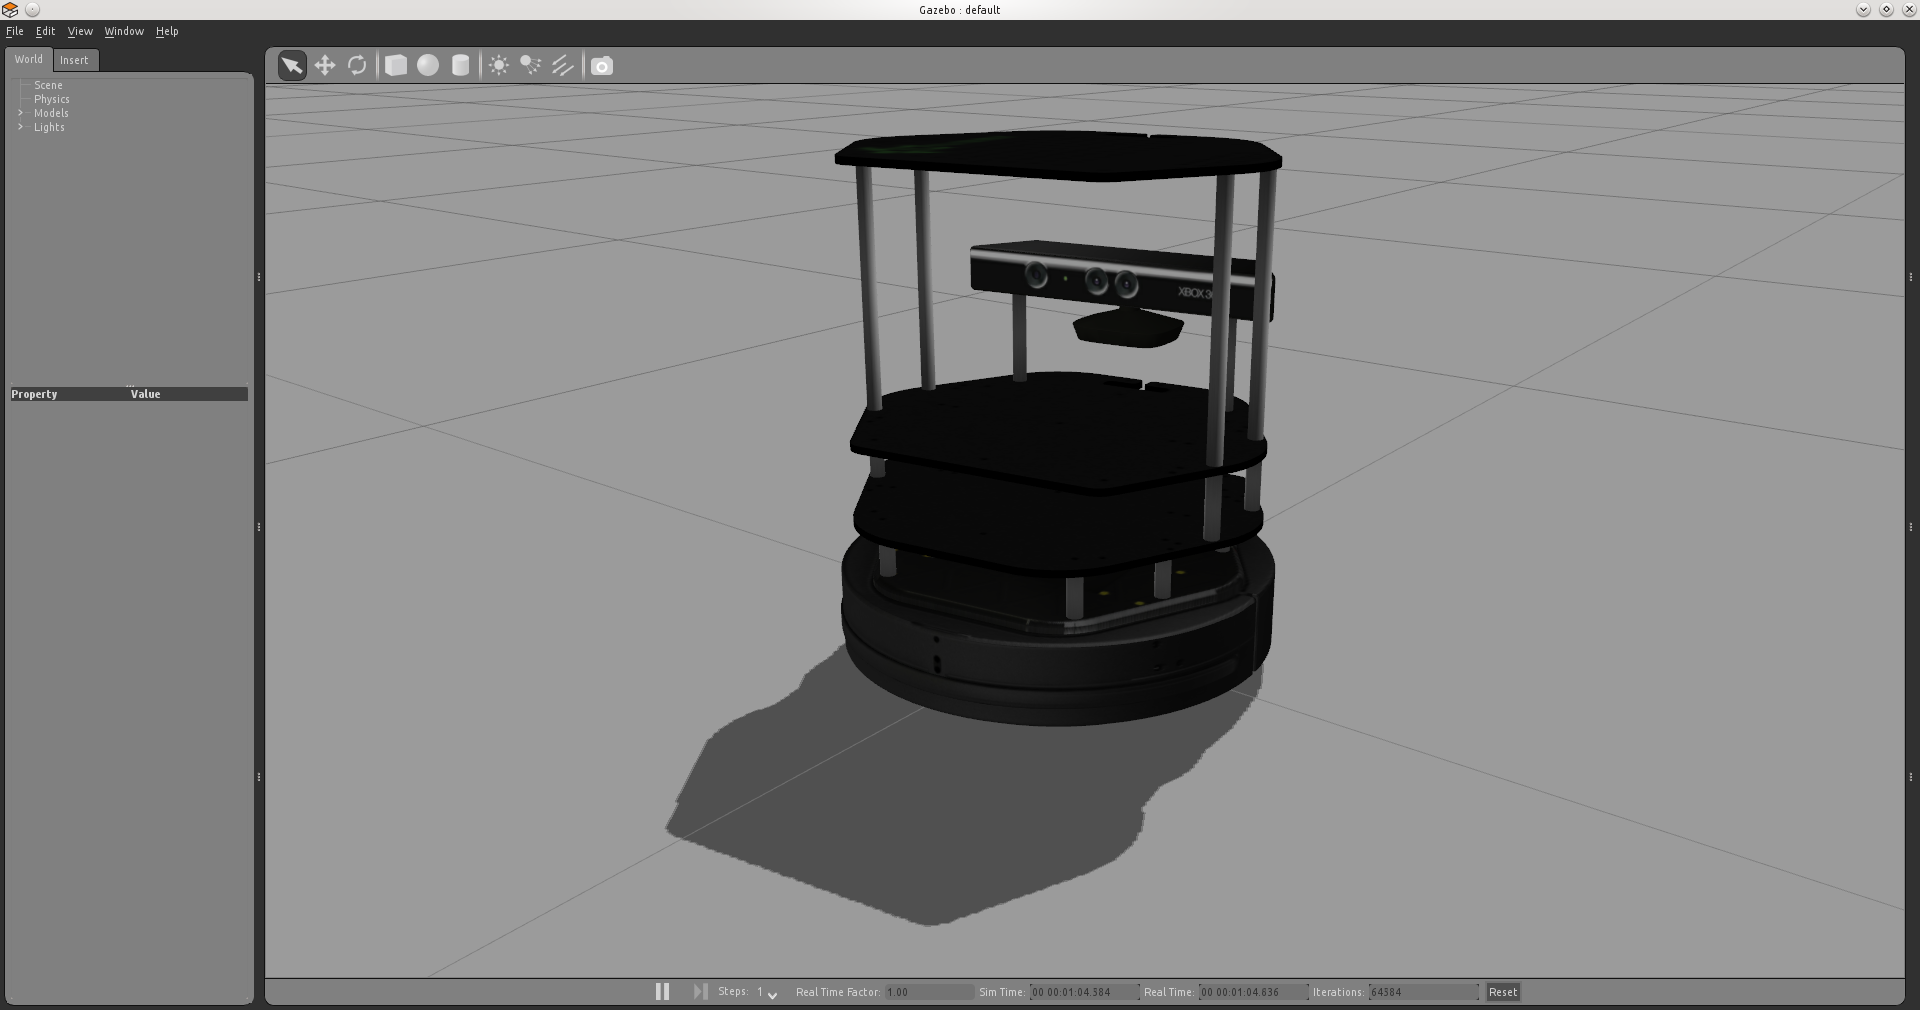 turtlebot2_gazebo_simulation.png